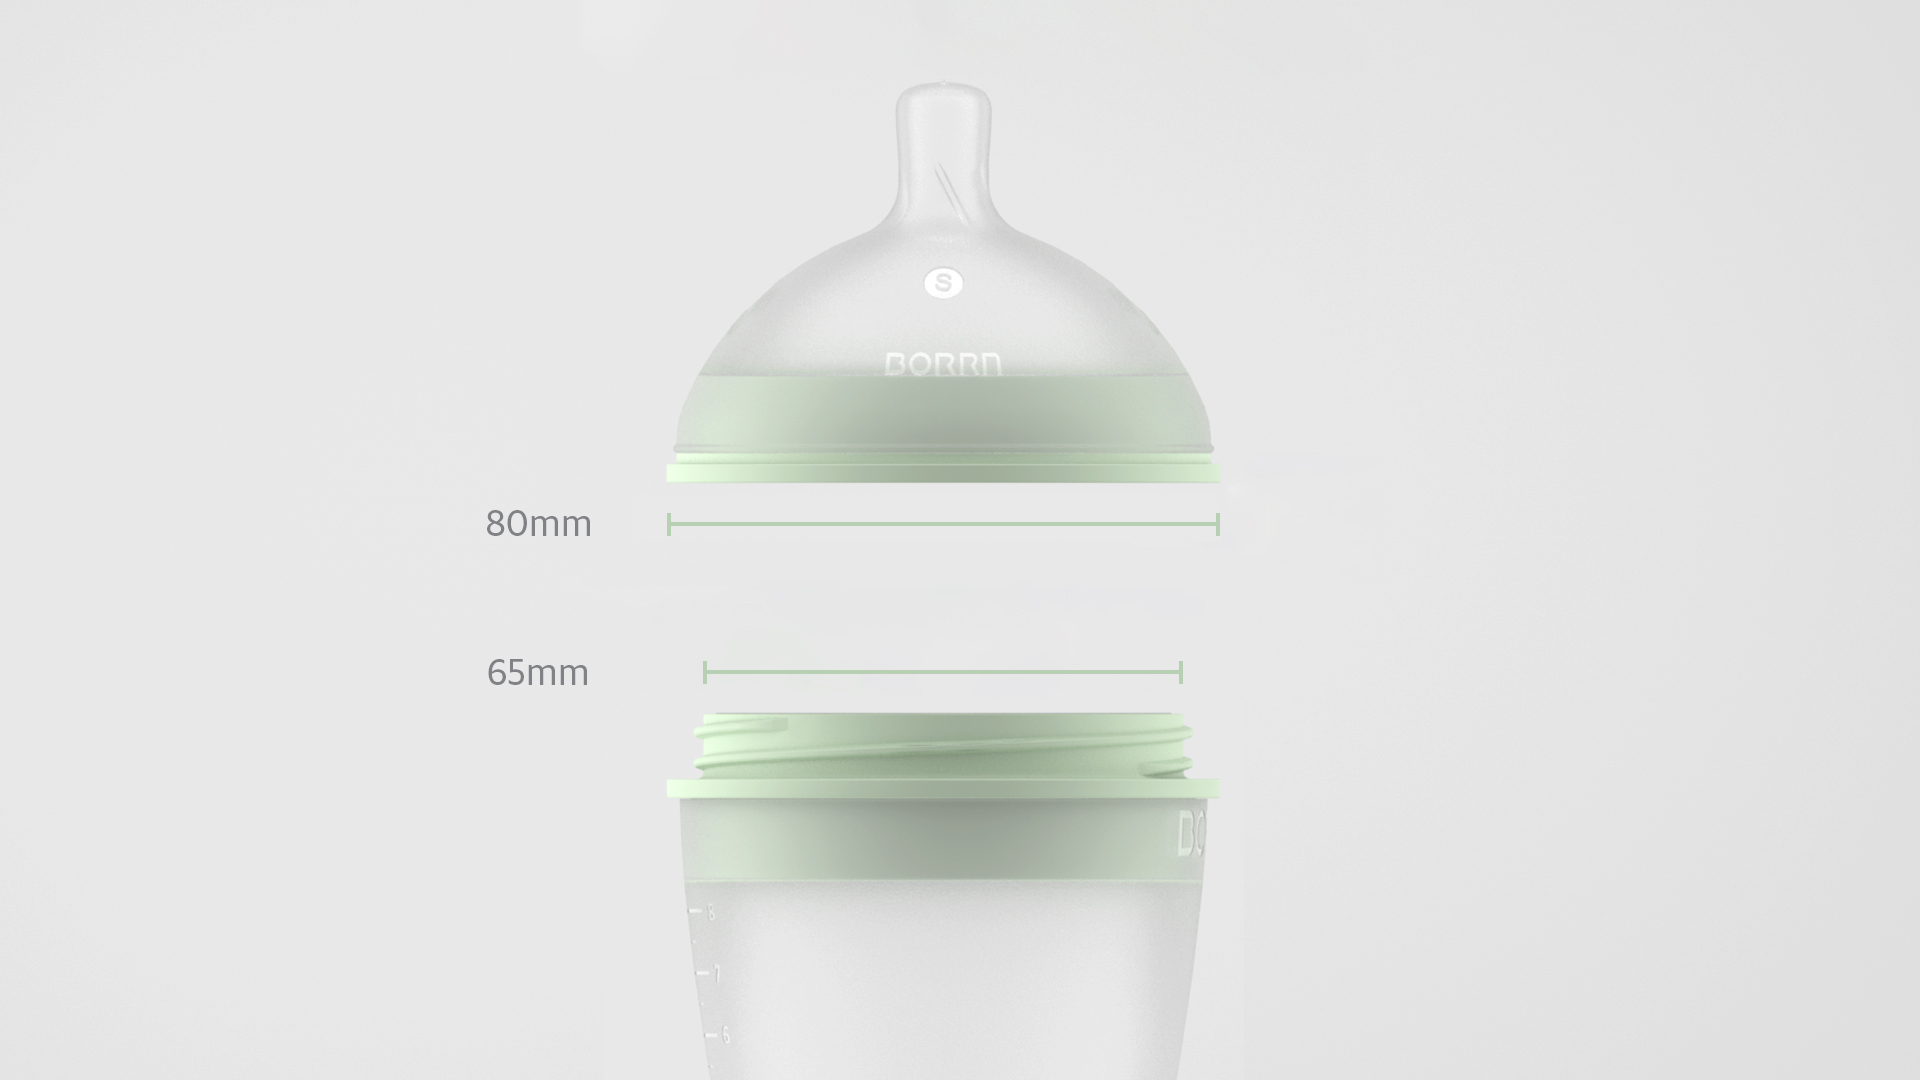 BORRN Silicone Feeding Bottle